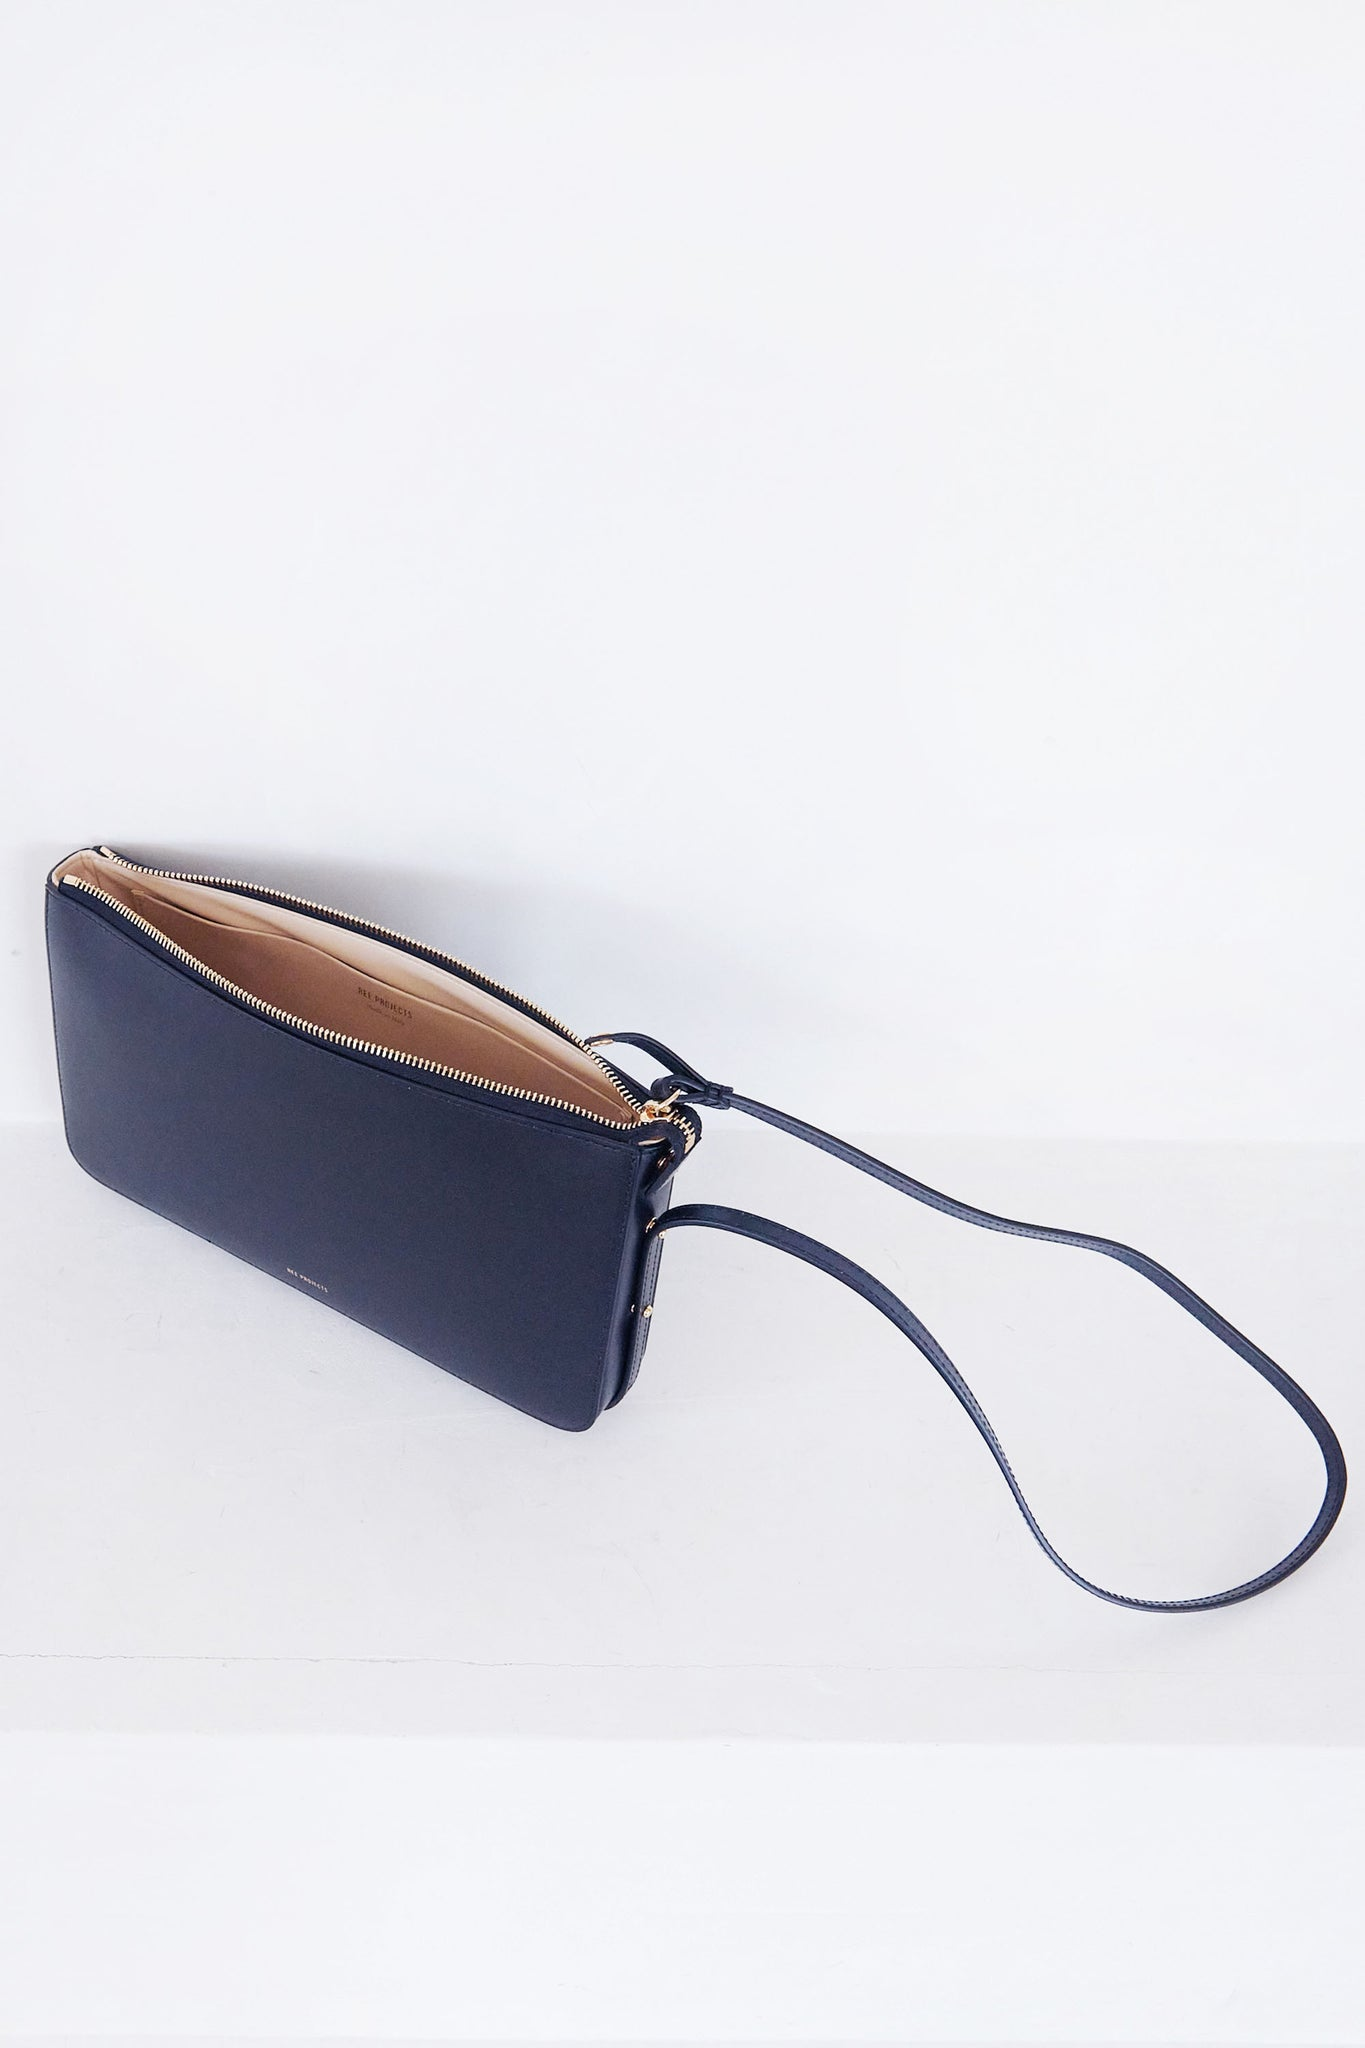 REE PROJECTS - do clutch, black